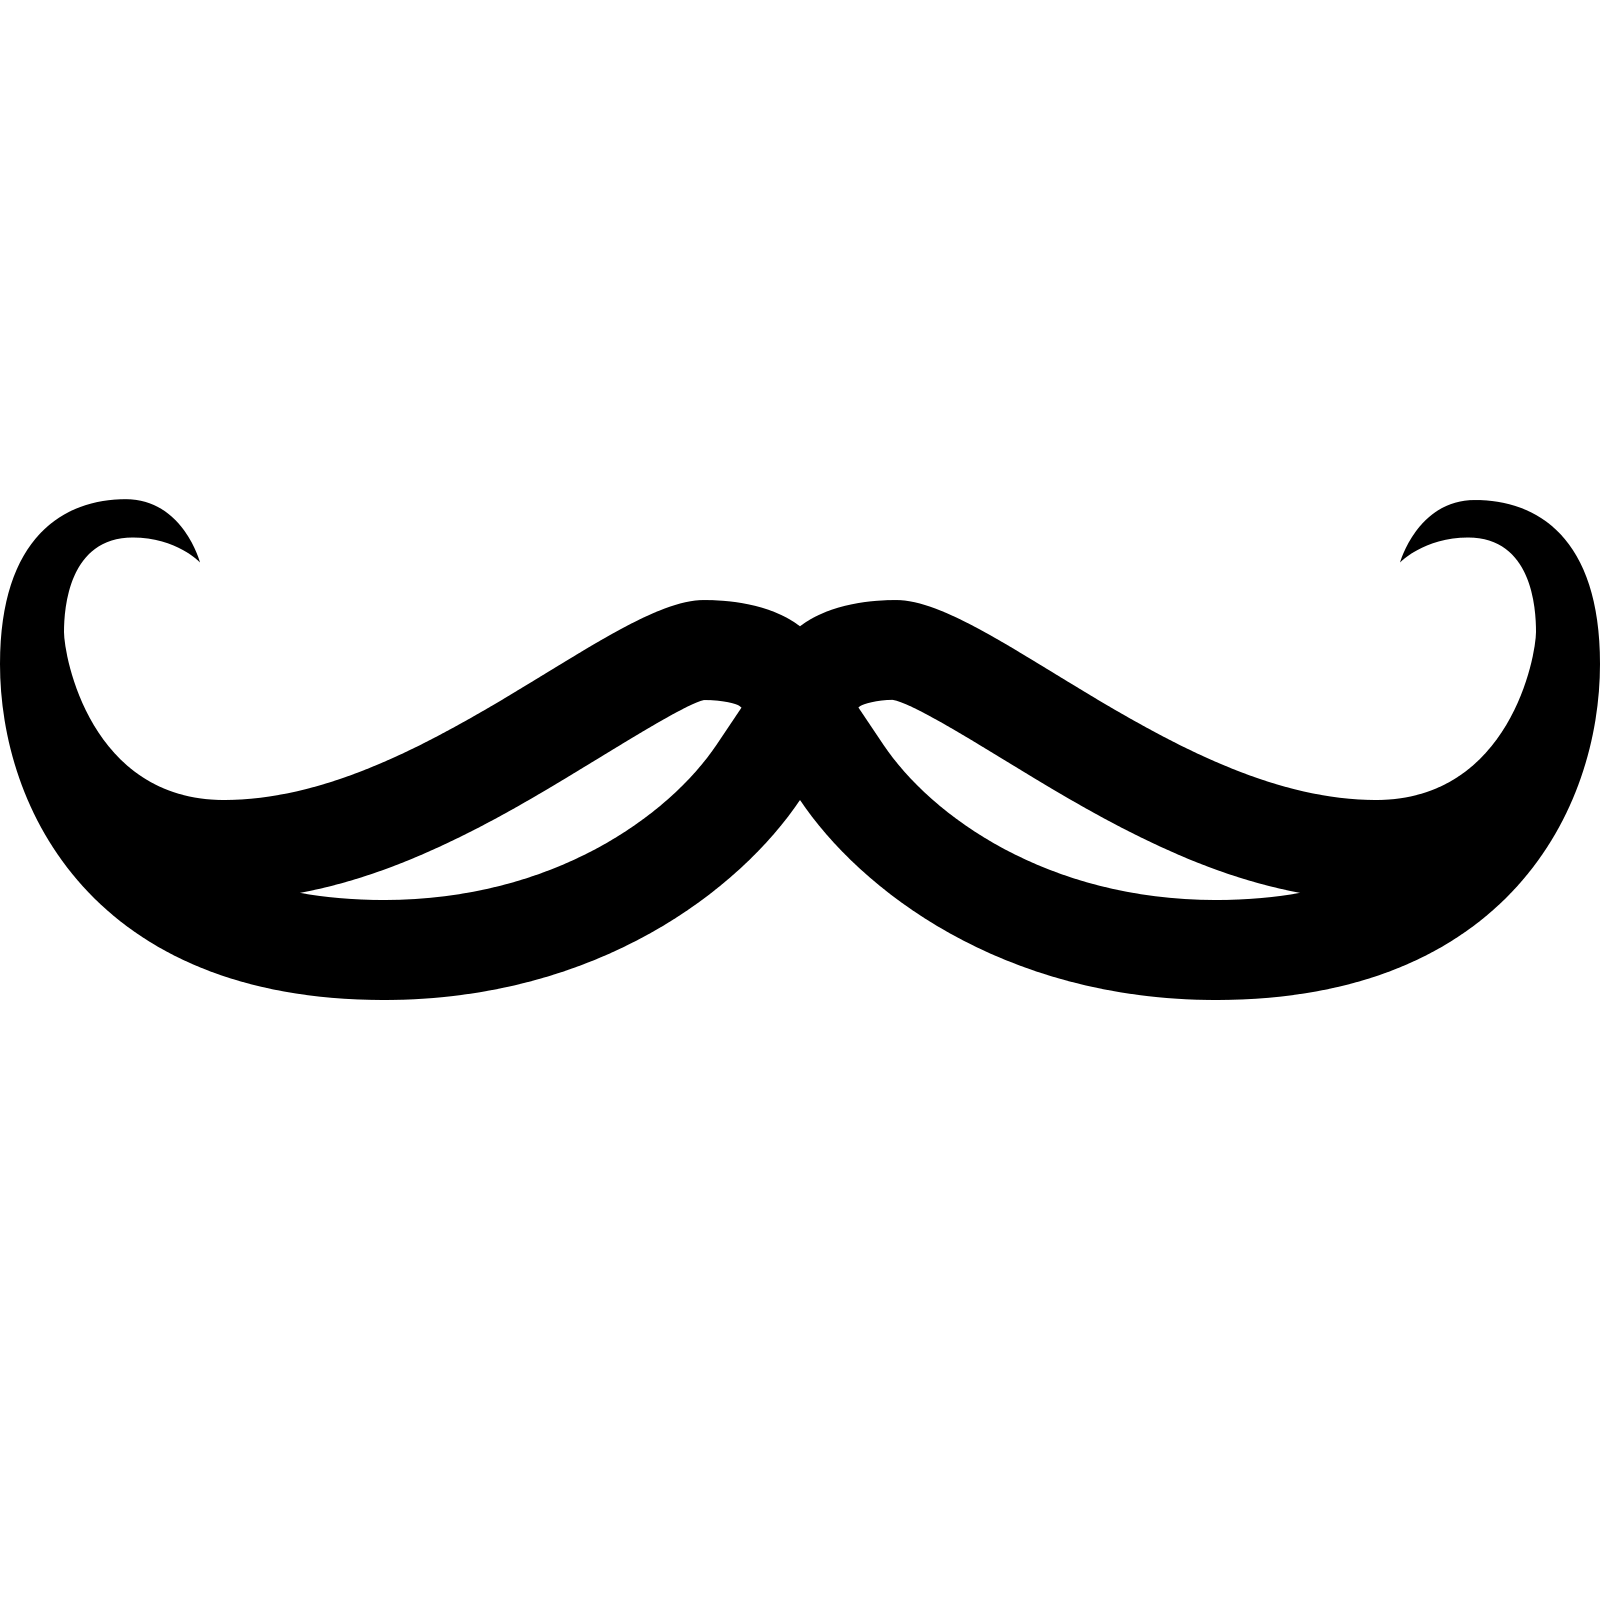 clip freeuse stock Mustache clipart black and white. Clip art images jan